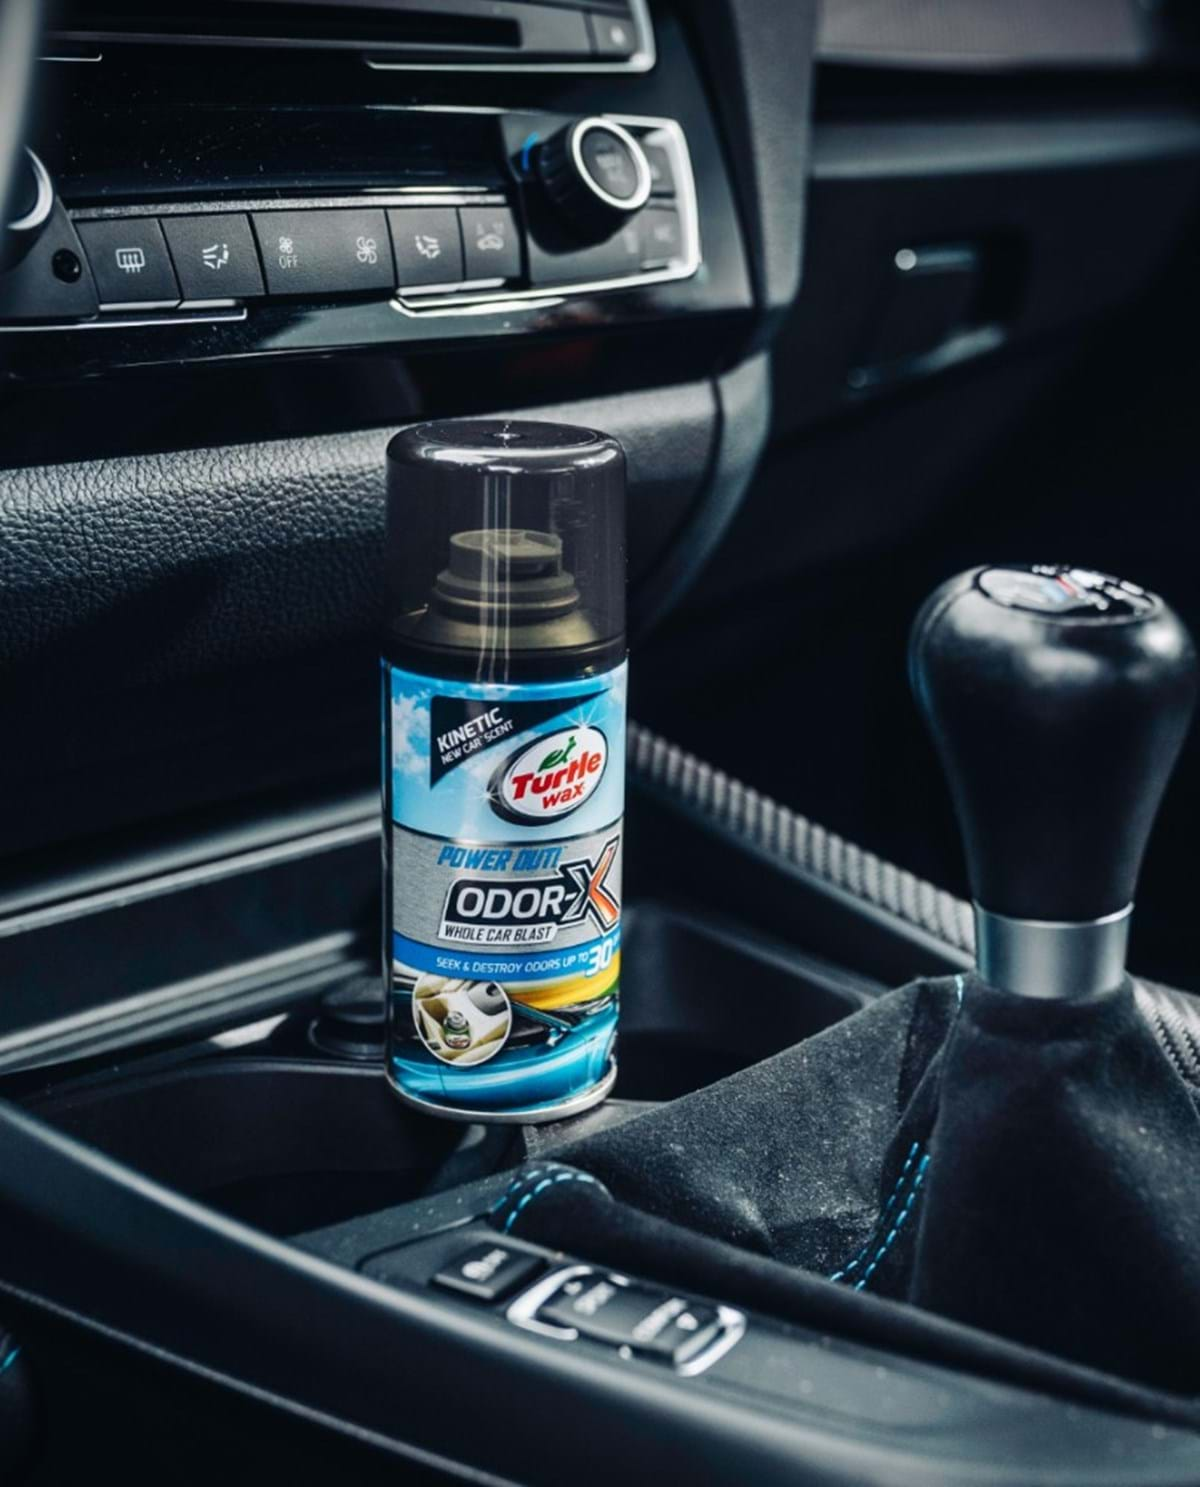 remove smoke smells - turtle wax - power out odor x